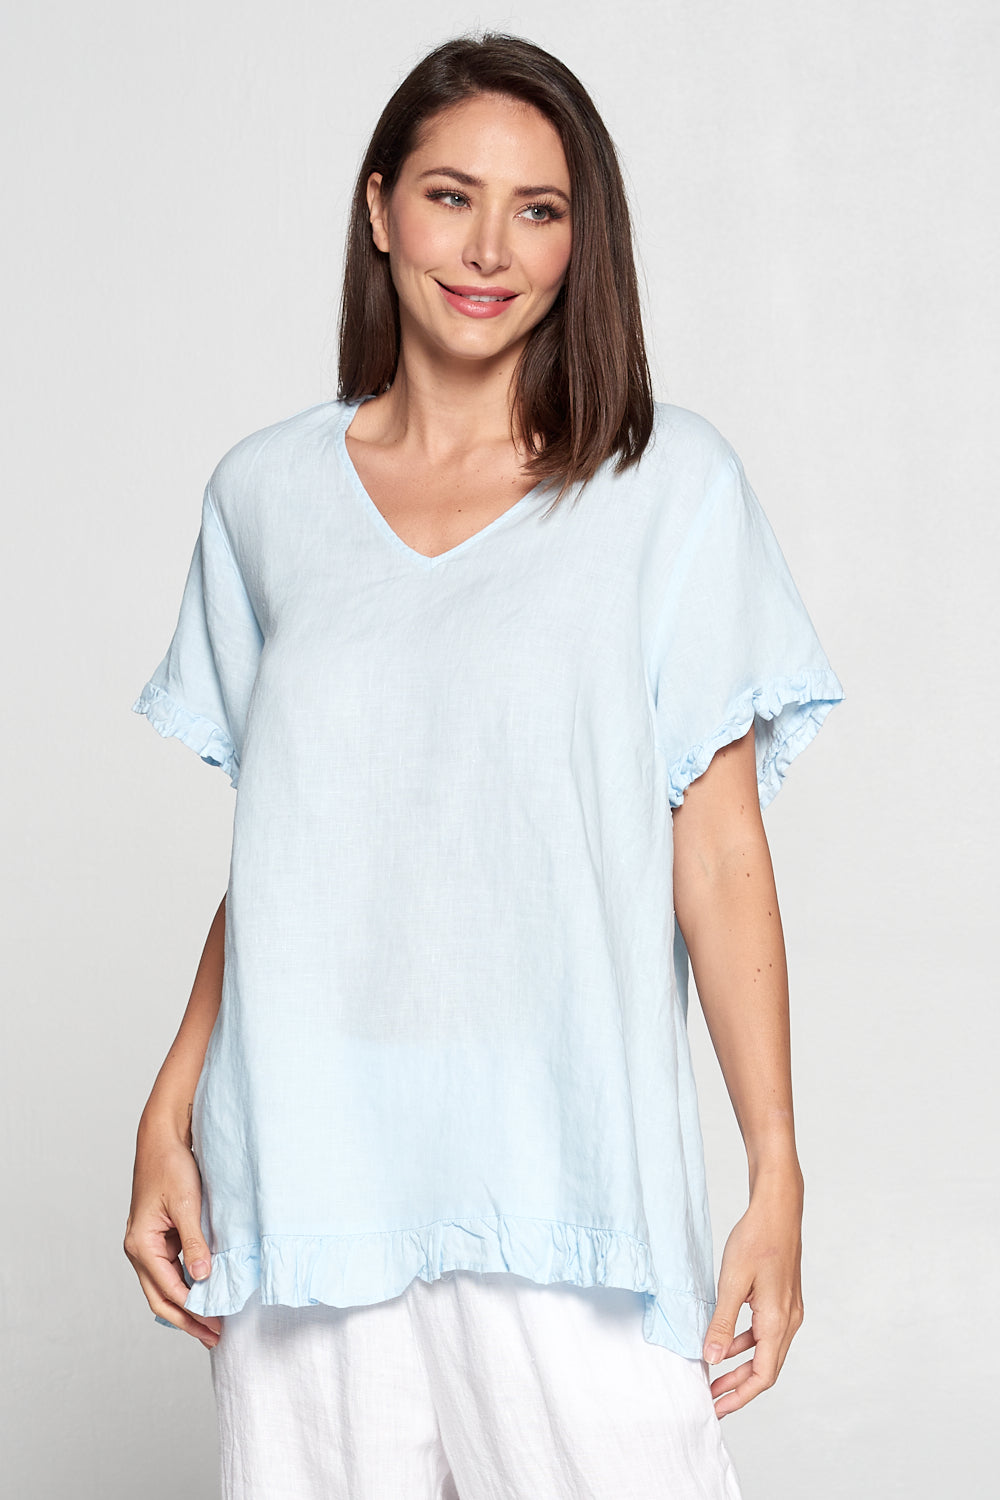 La Fixsun Linen Short Sleeve Vneck top with Ruffle - FBT413 - Ice Blue - Lori's Lovelies